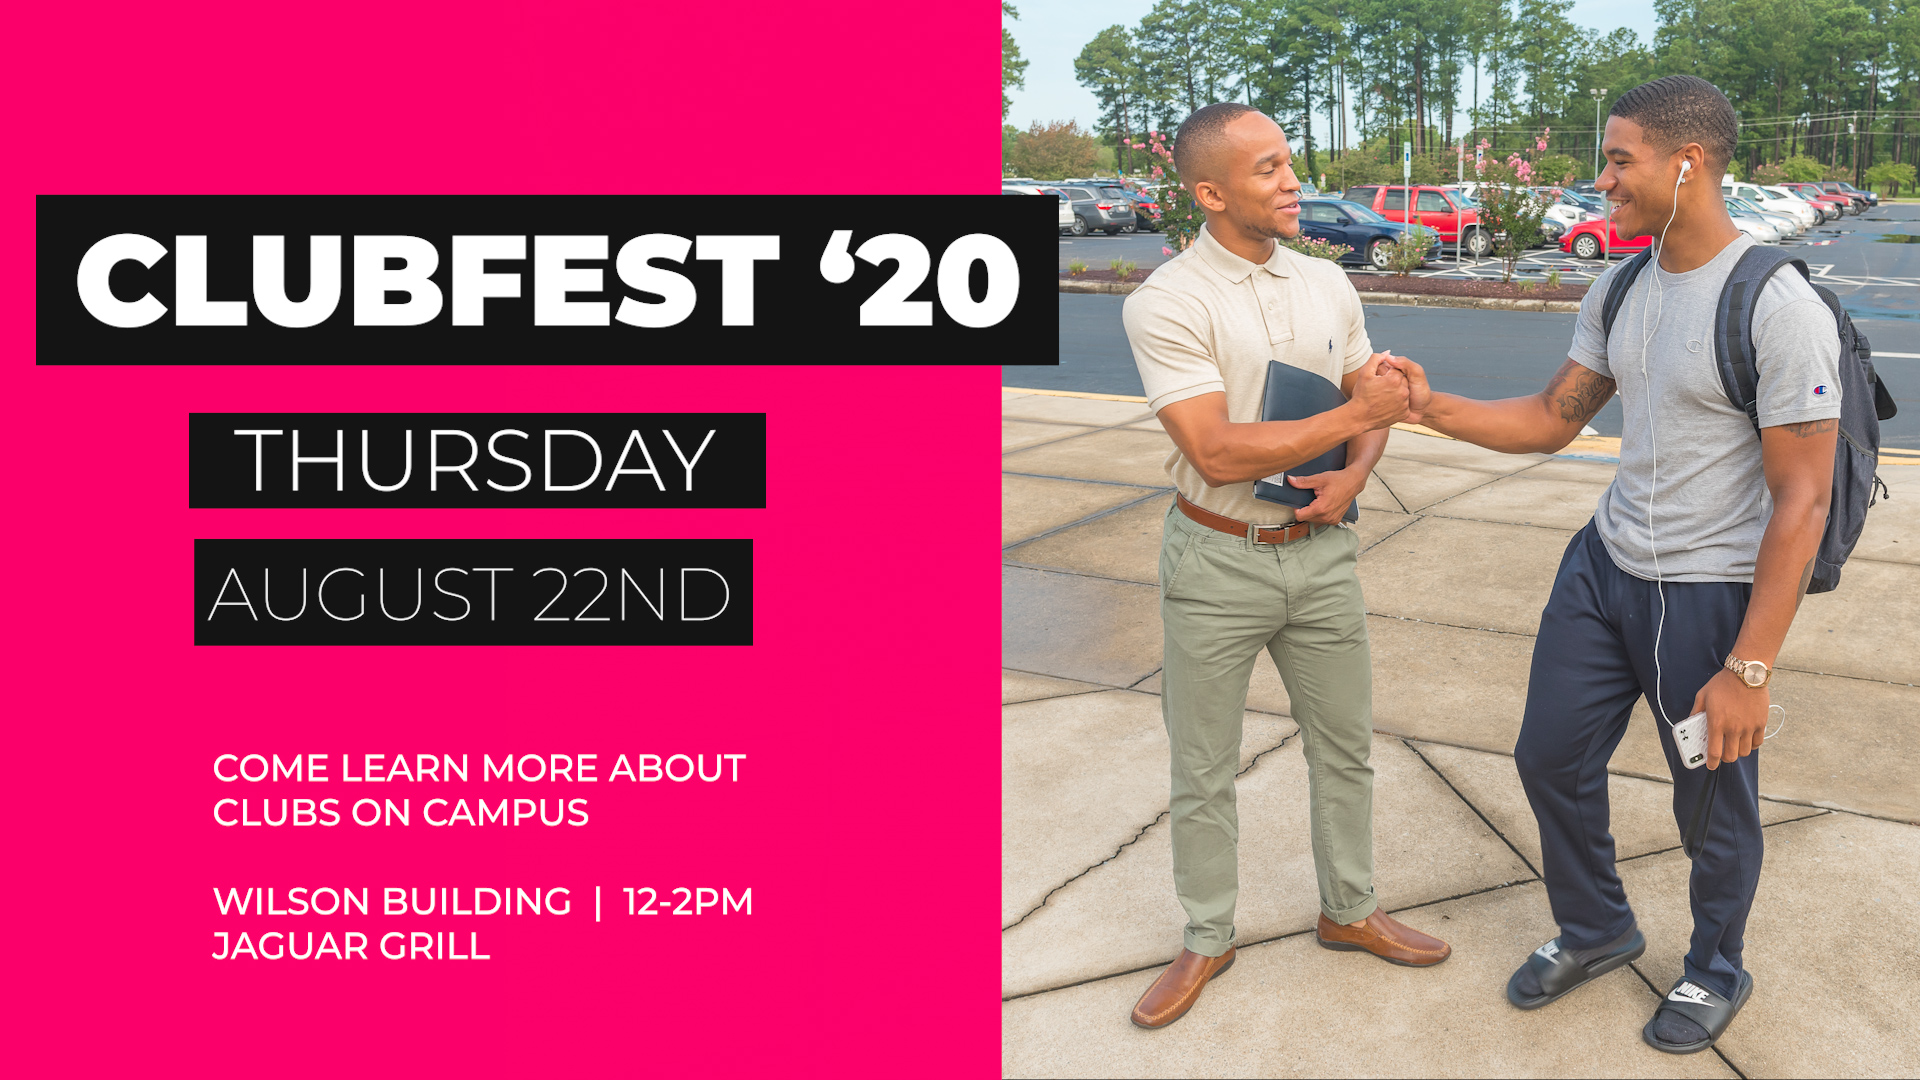 Club Fest - Thursday August 22nd. Come learn more about clubs on campus. Wilson building from 12-2pm in the Jaguar Grill